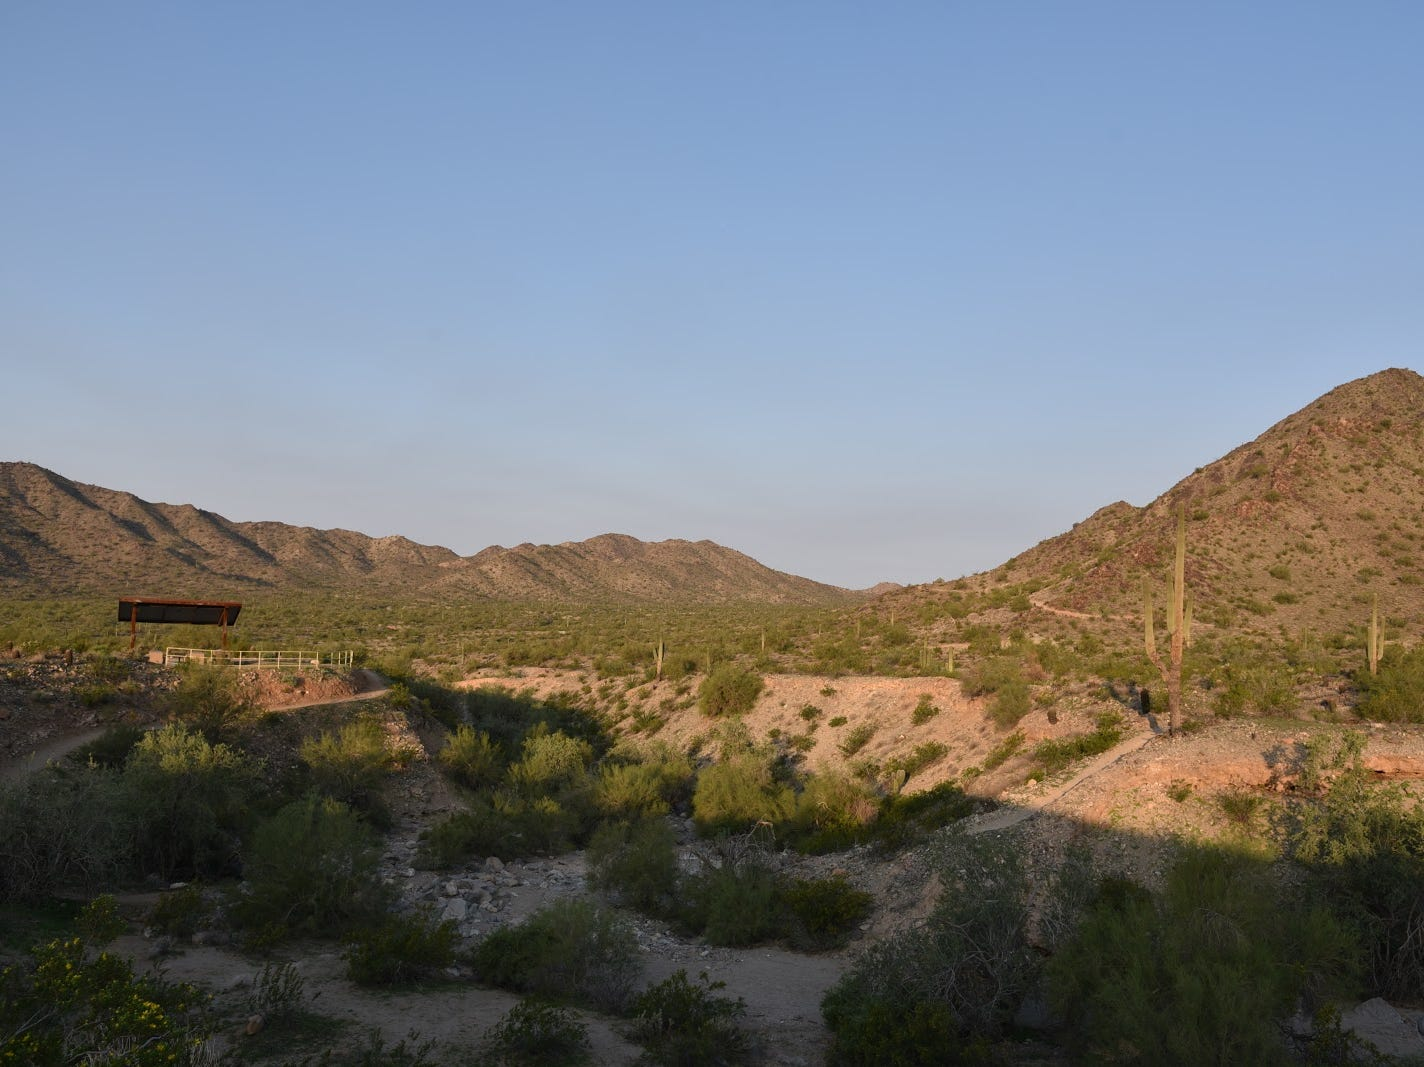 Pyrite Trail ascends the ridgeline in the center of the photo.